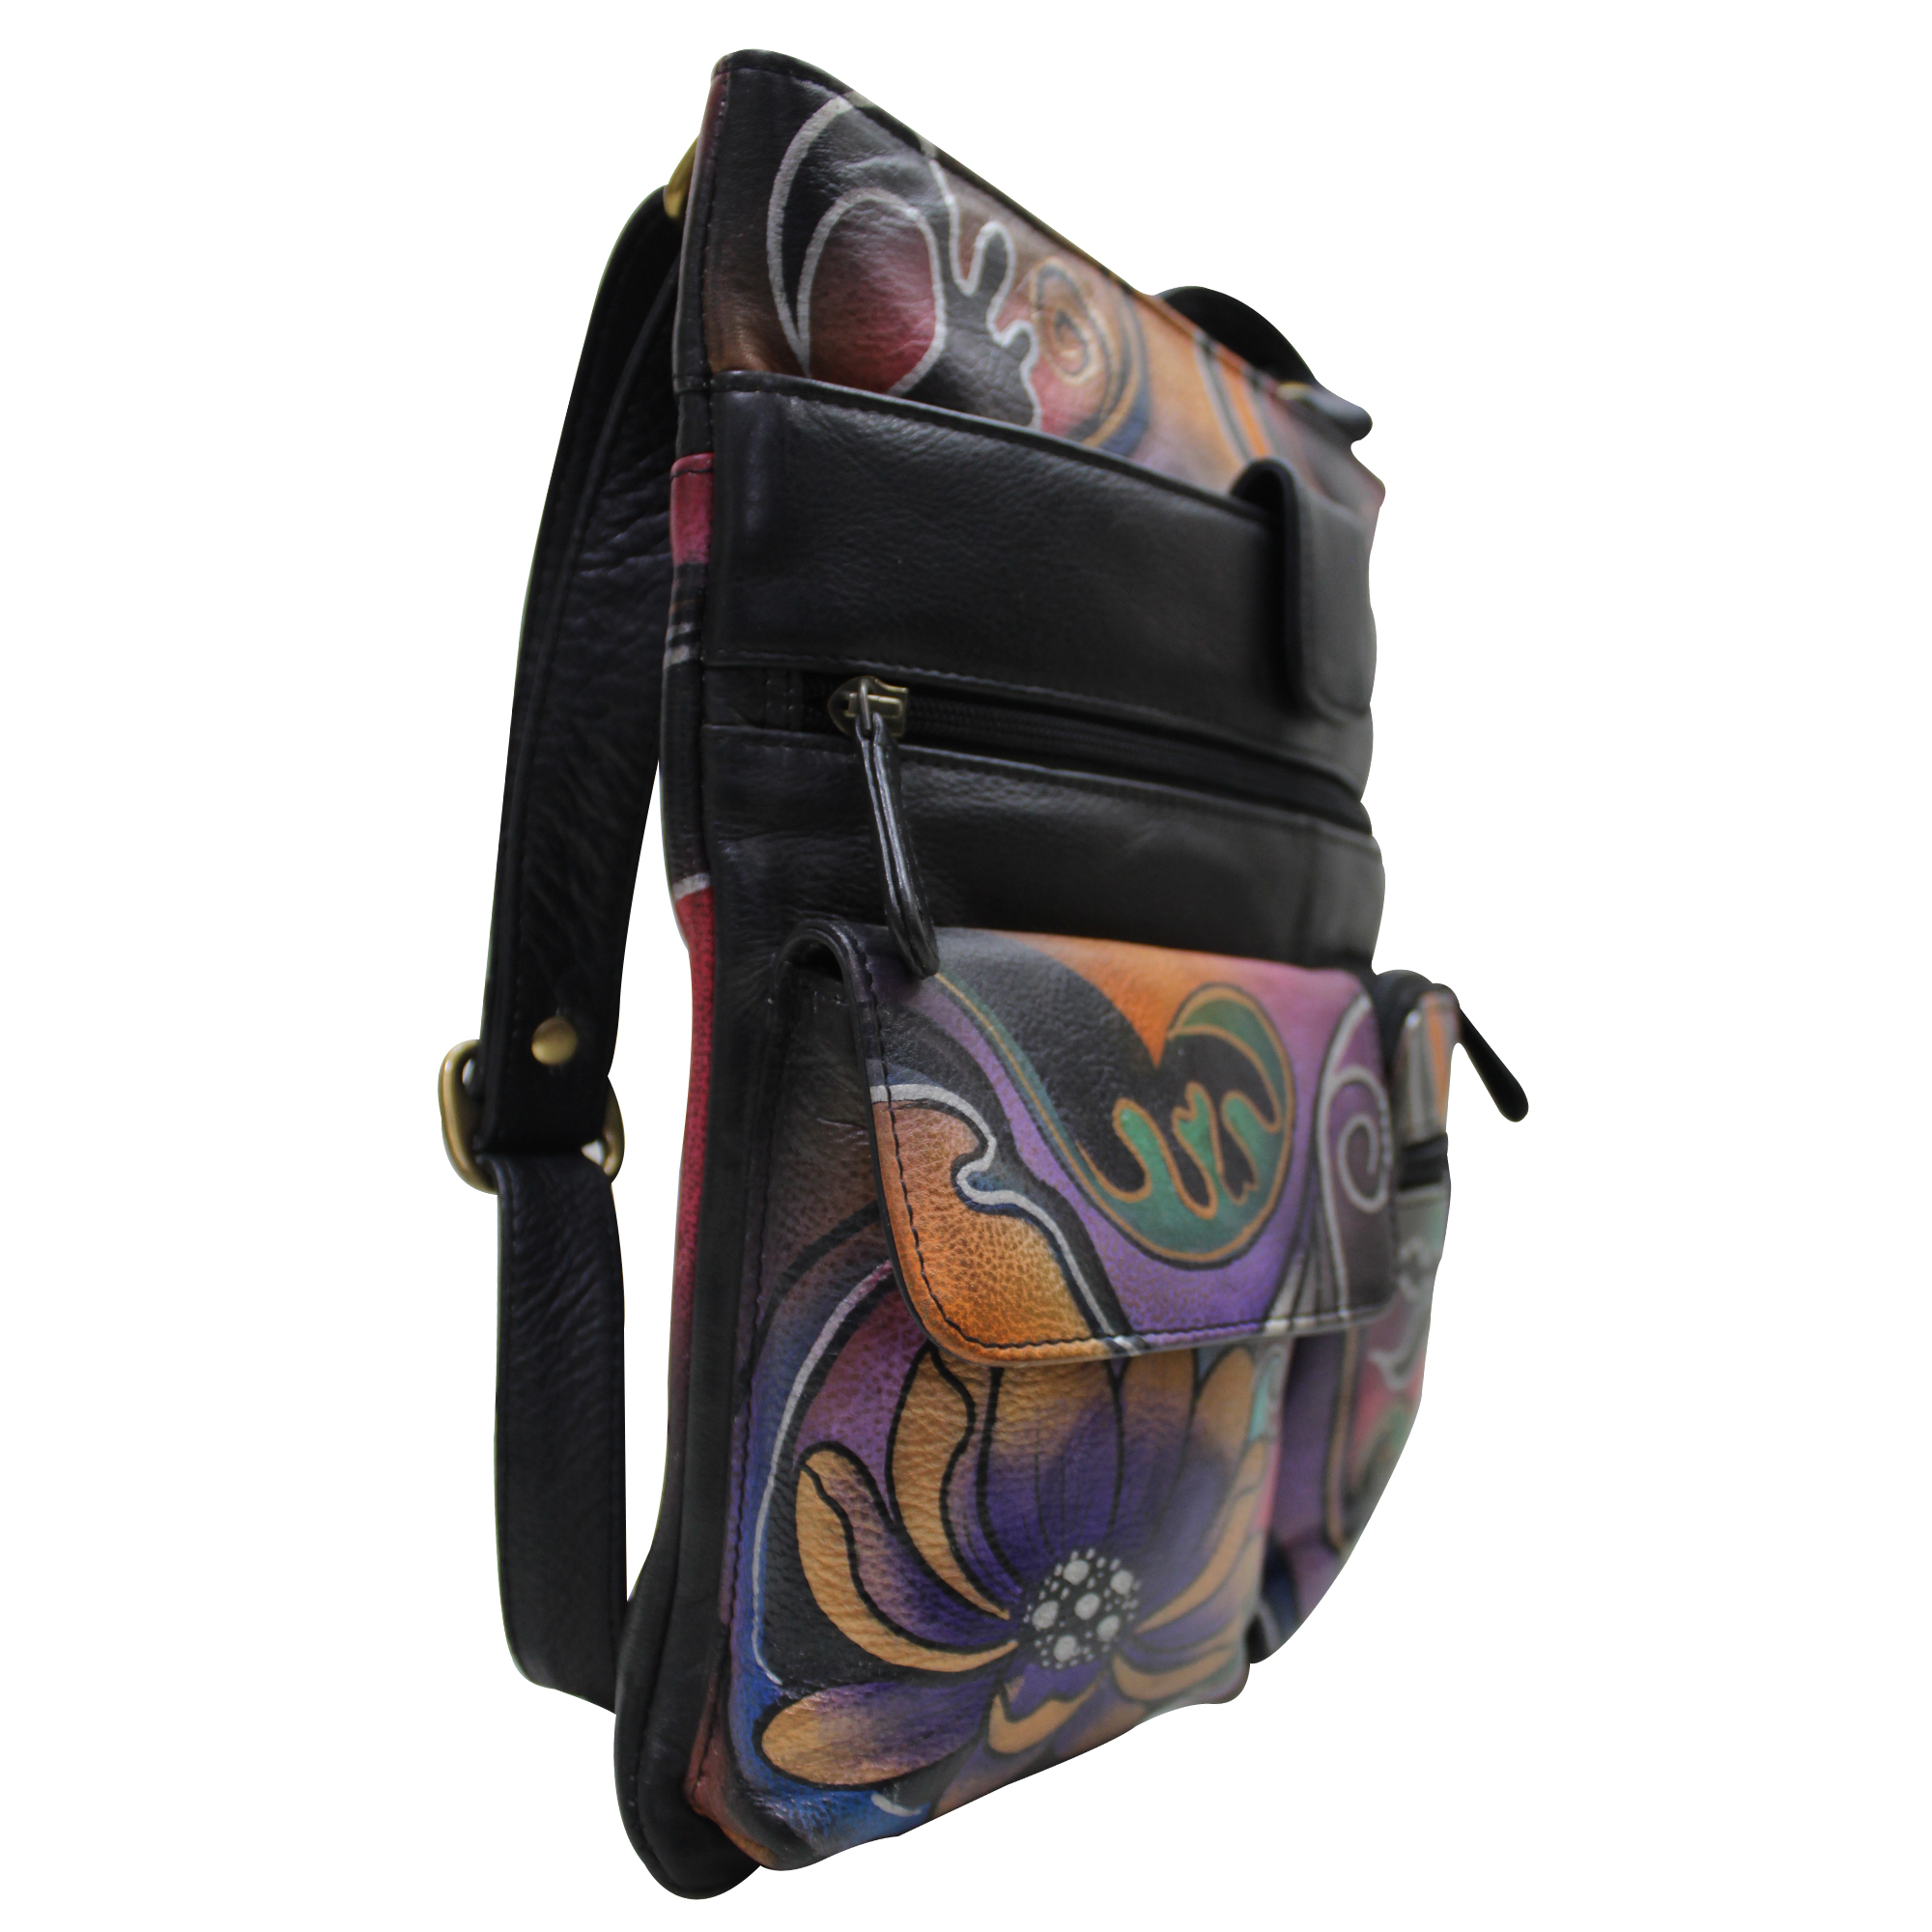 9bdcaf32a290a Women Hand Painted Cross Body Sling Bag Stylish Abstract Designer Leather  Shoulder Vanity Purse with Mobile Case and Zip Pockets